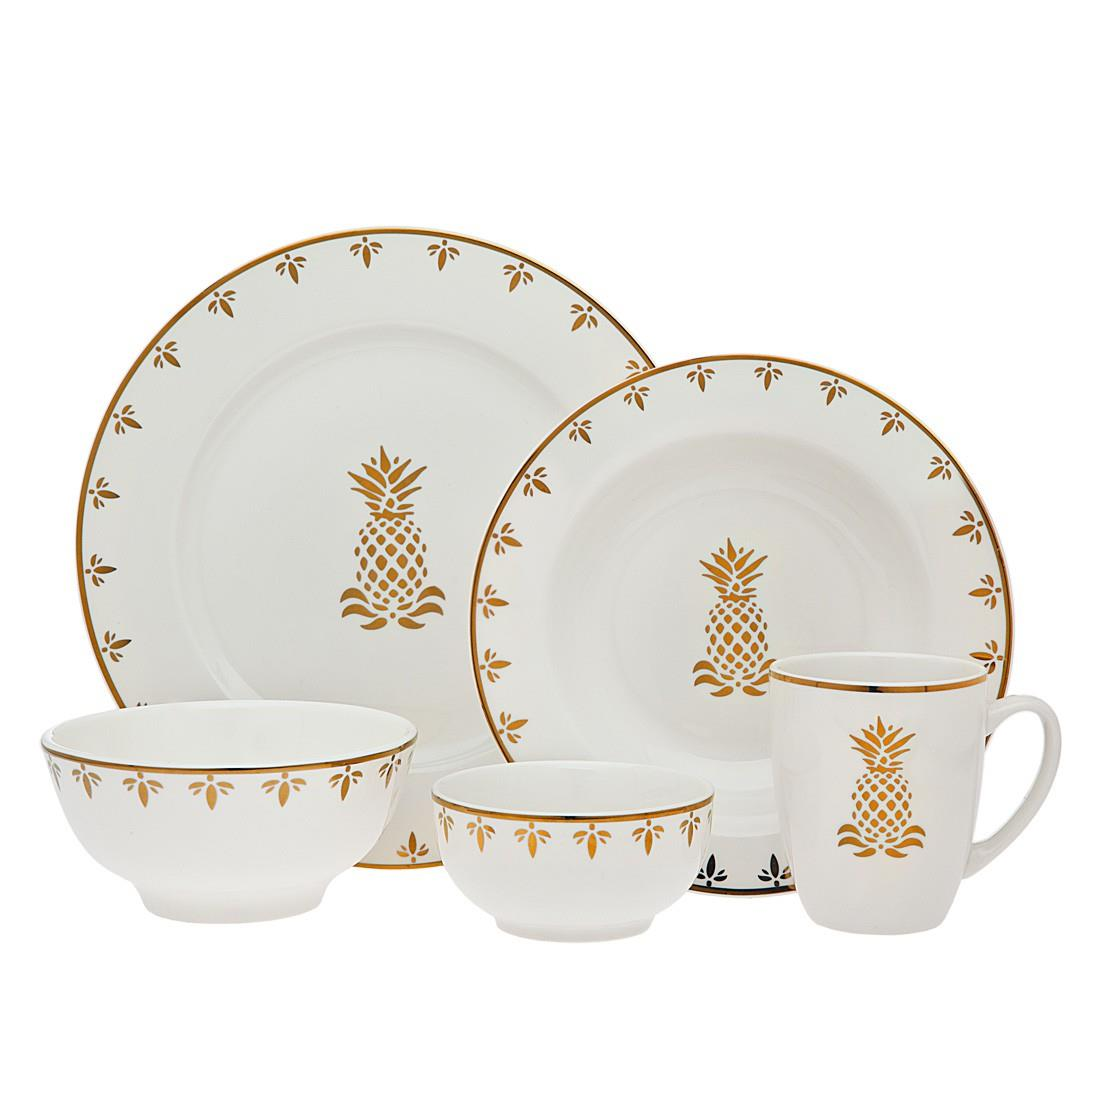 Pineapple Dinnerware - Gold 16 Piece